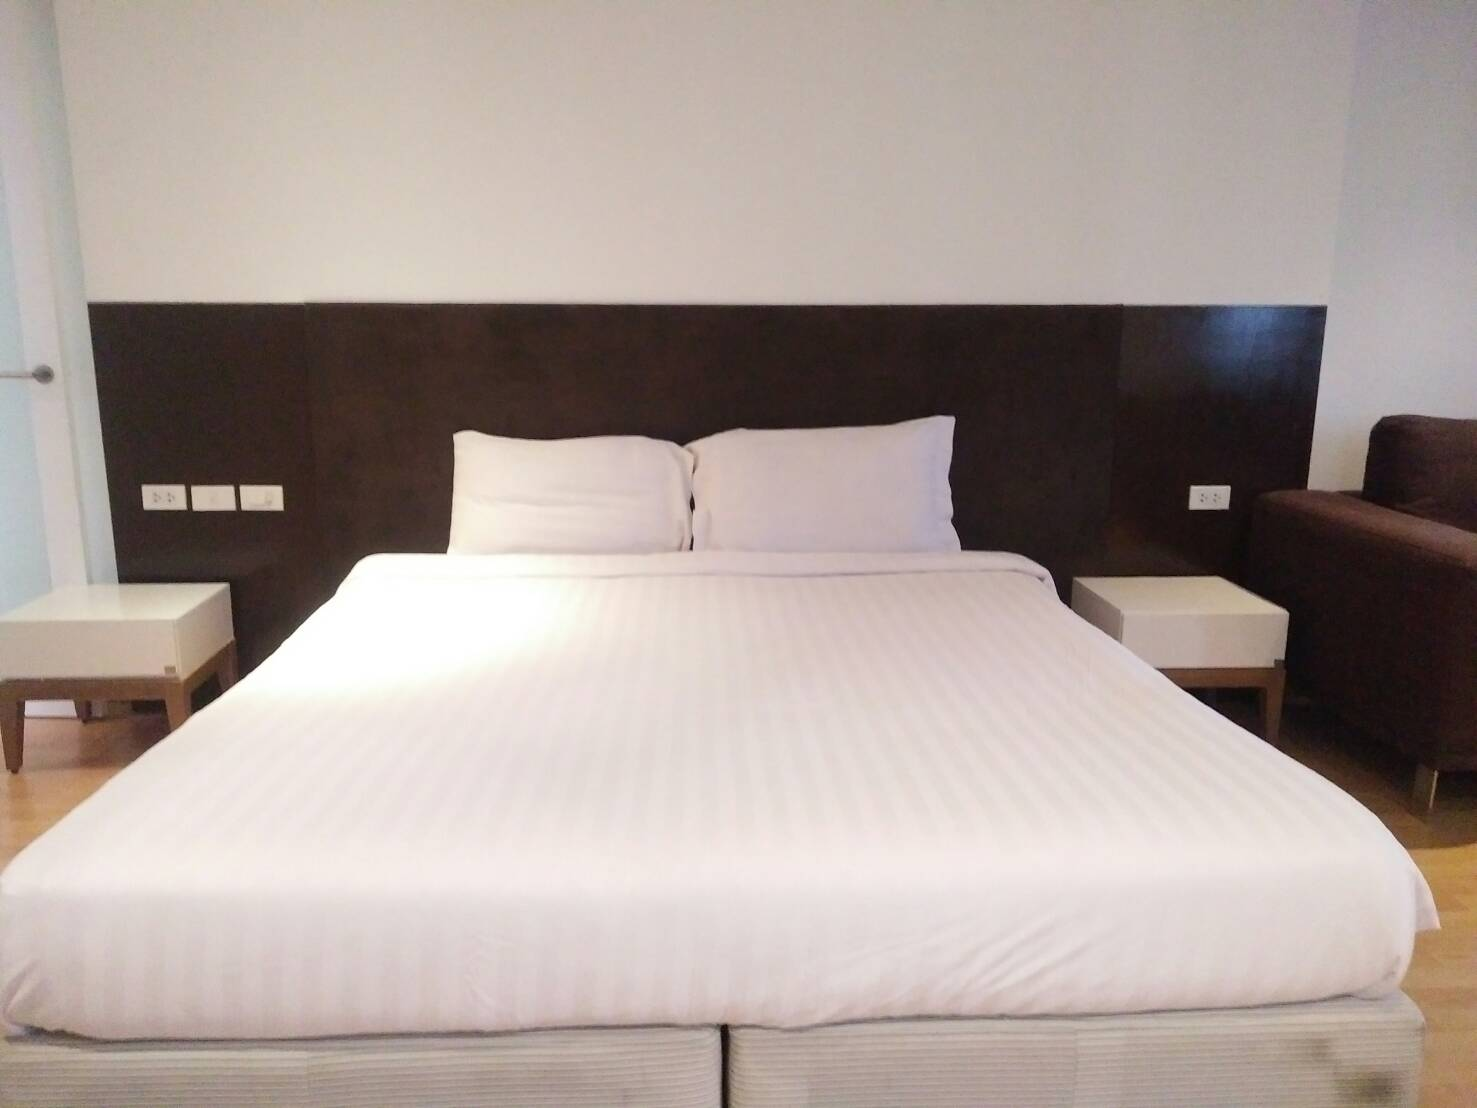 For Rent Service Apartment Near Skytrain Nana Station. Big Room Size 54 sqm. Just 15, 000 Baht/Month